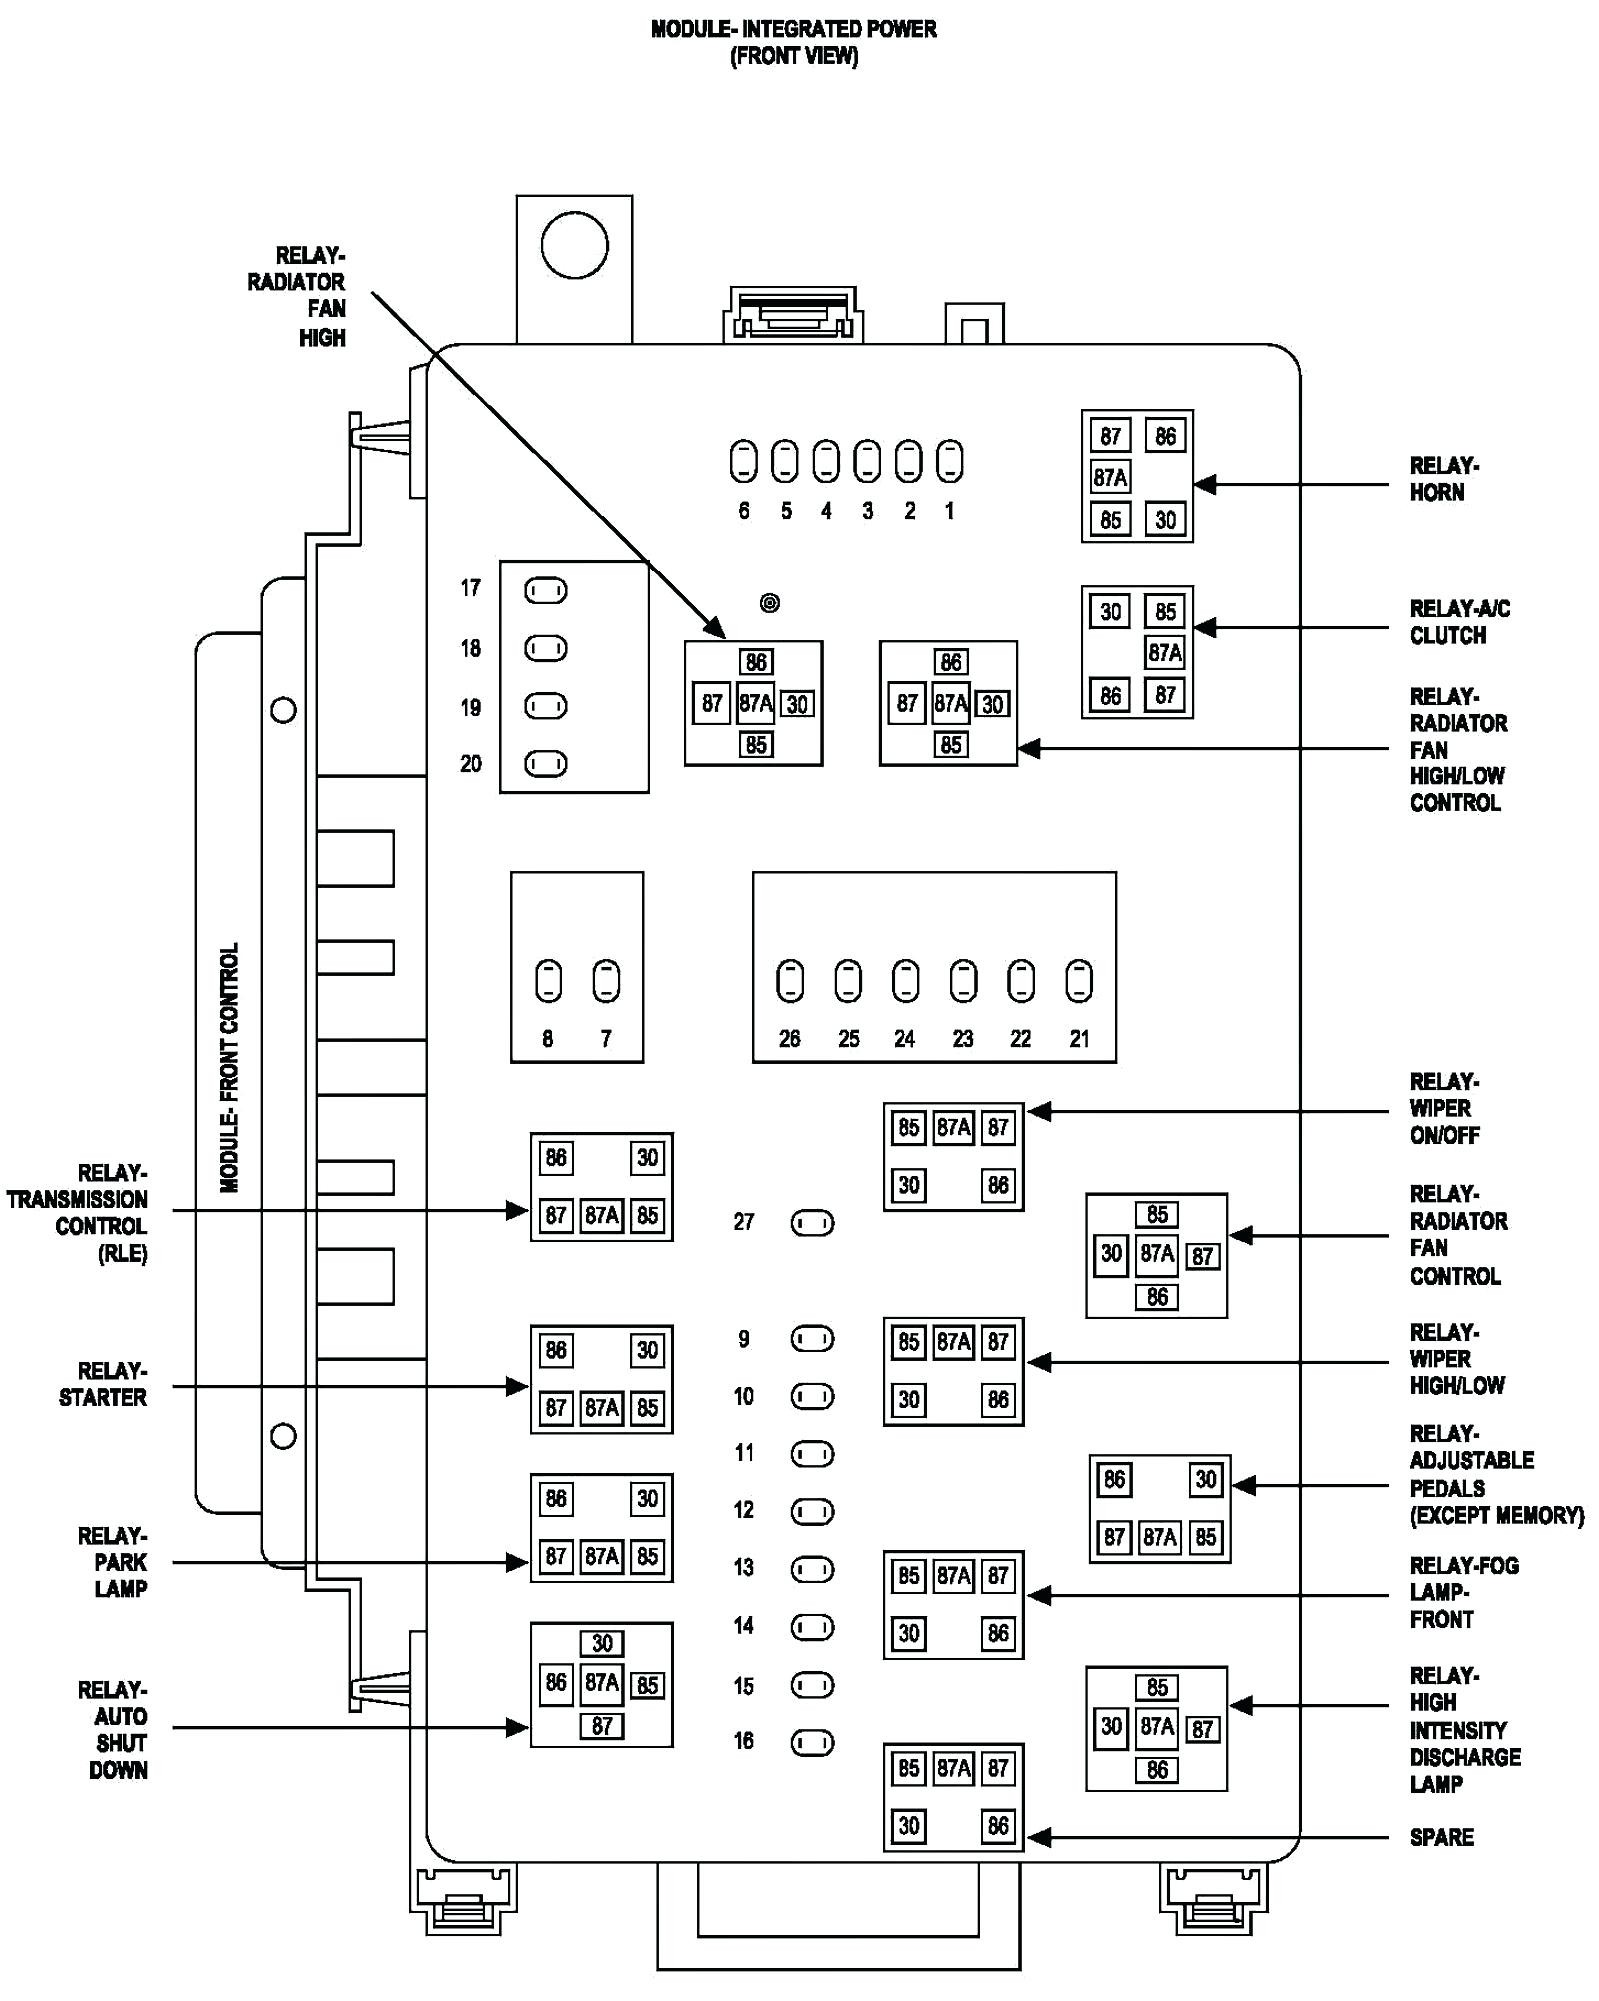 2005 Dodge Stratus Fuse Box Diagram